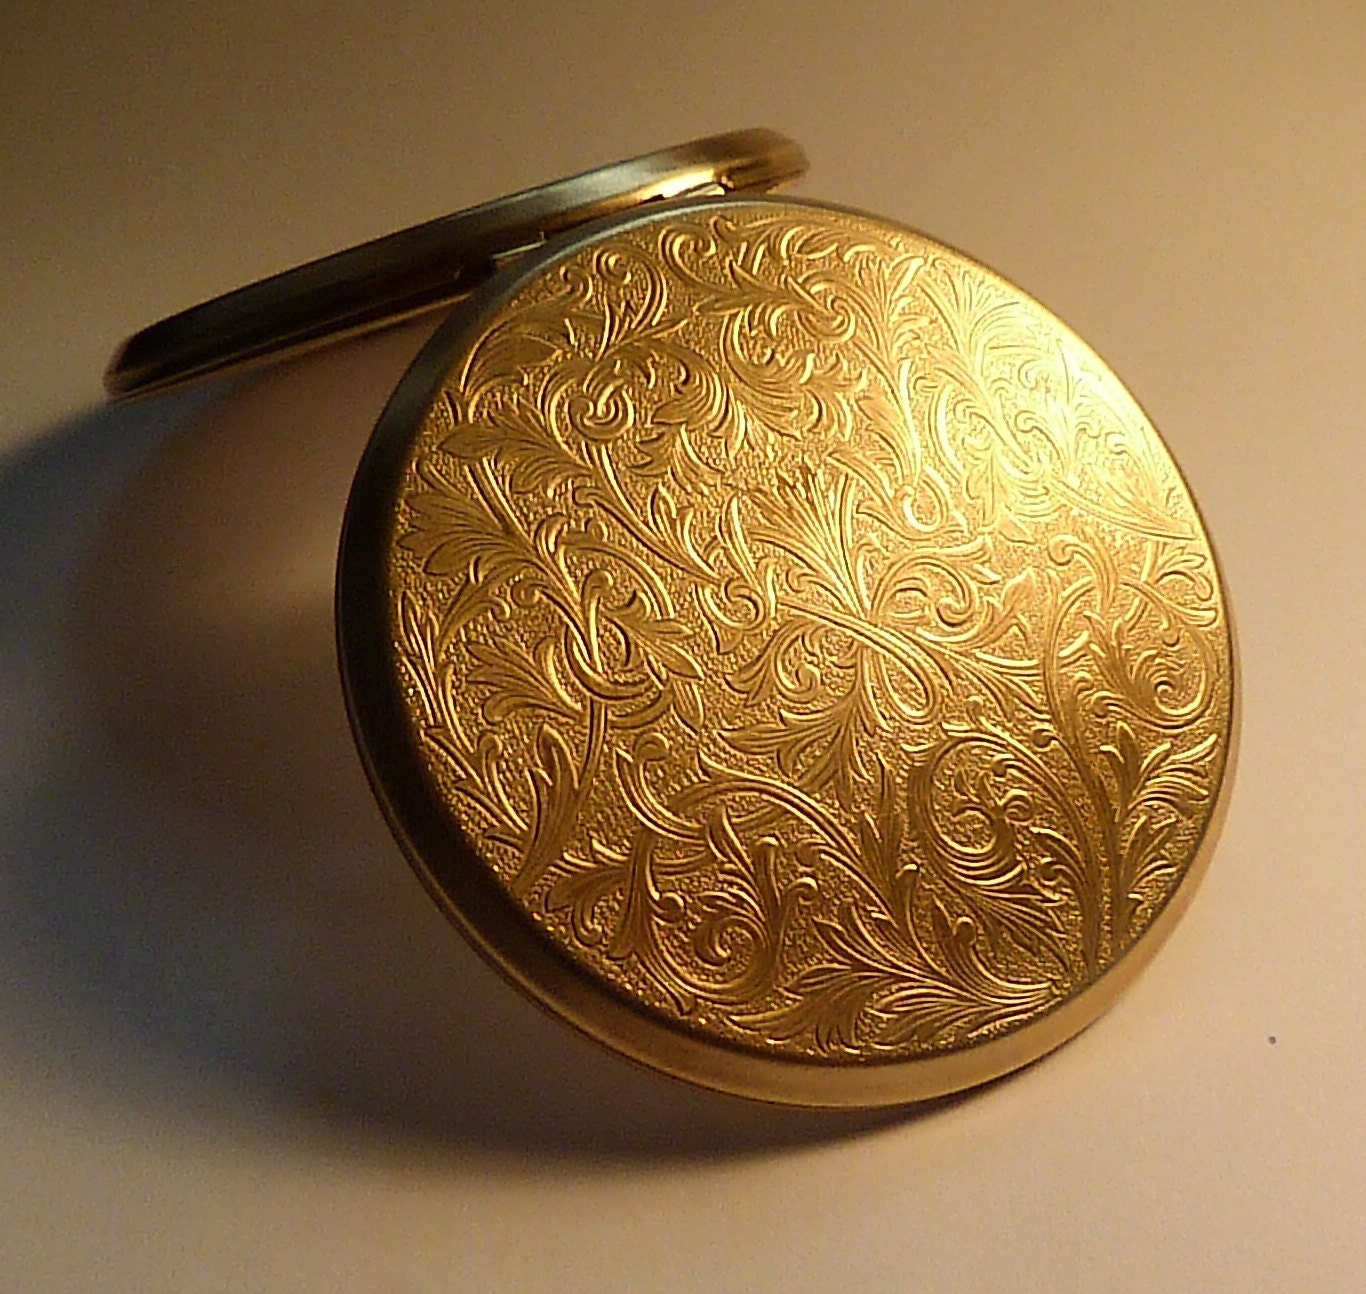 Vintage Stratton compacts bridesmaids pocket mirrors retro wedding gifts favors  favours